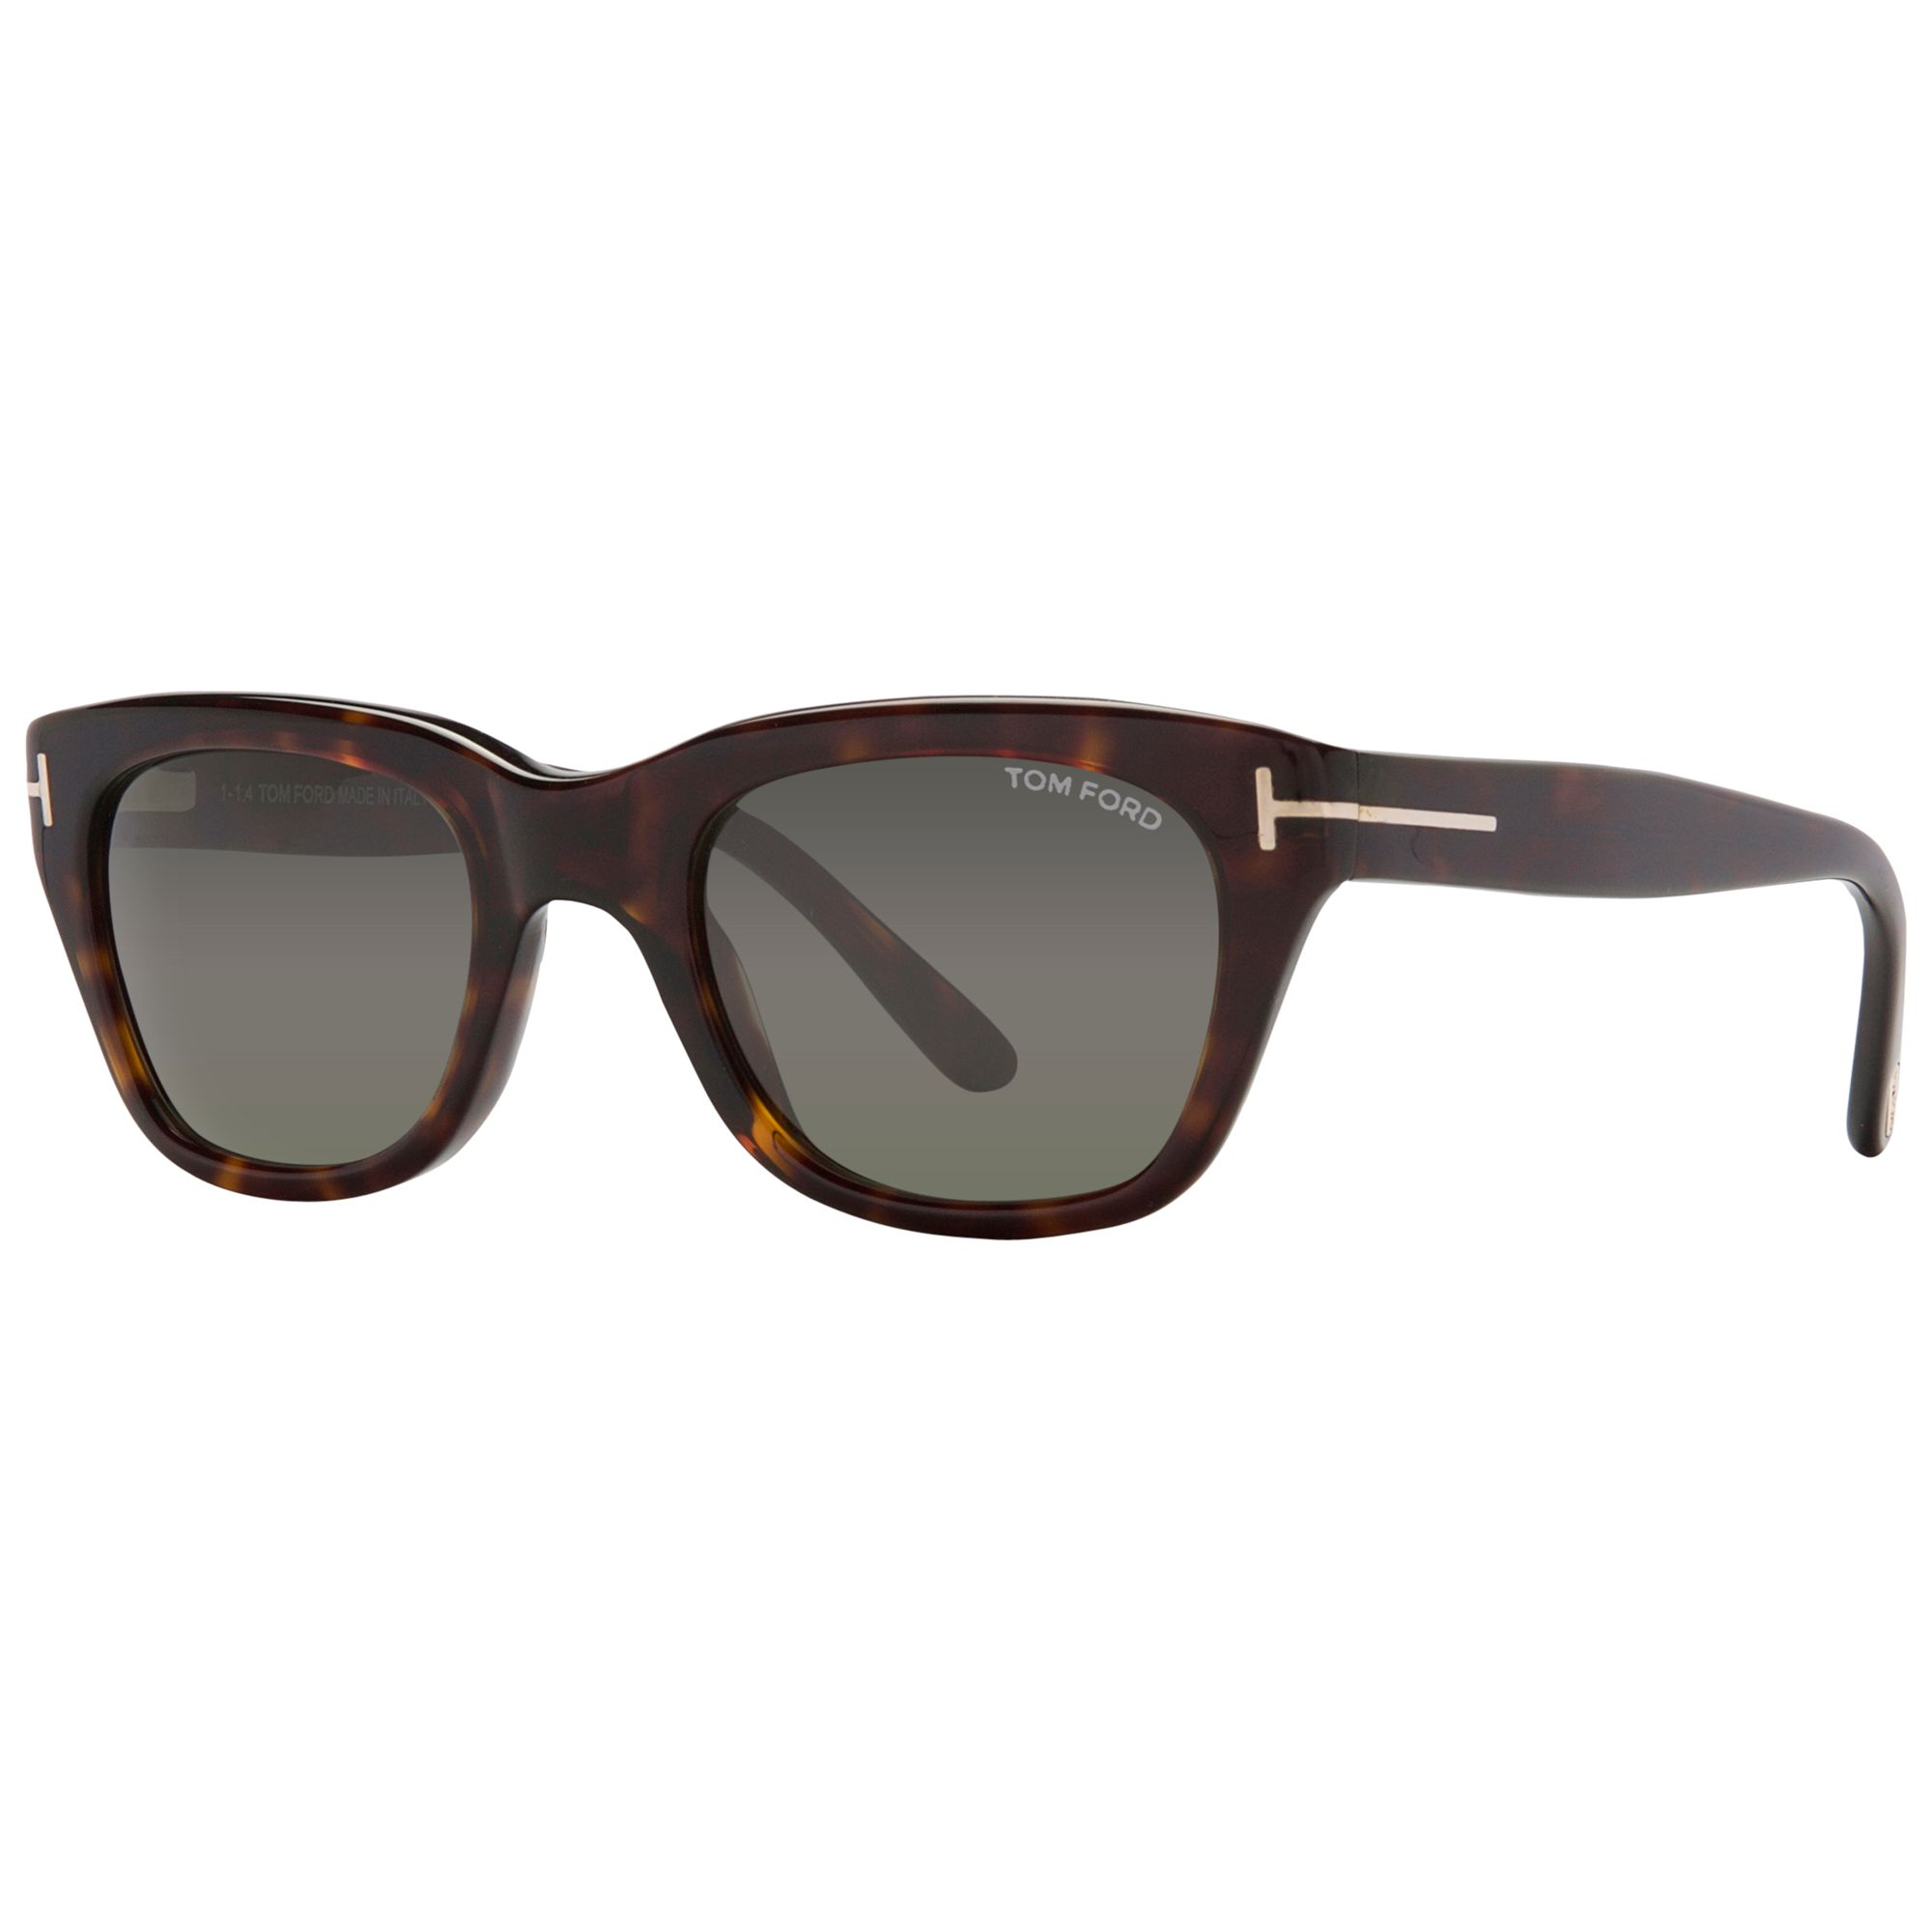 04e87e50fd Tom Ford Snowdon Ft0237 Sunglasses - Bitterroot Public Library